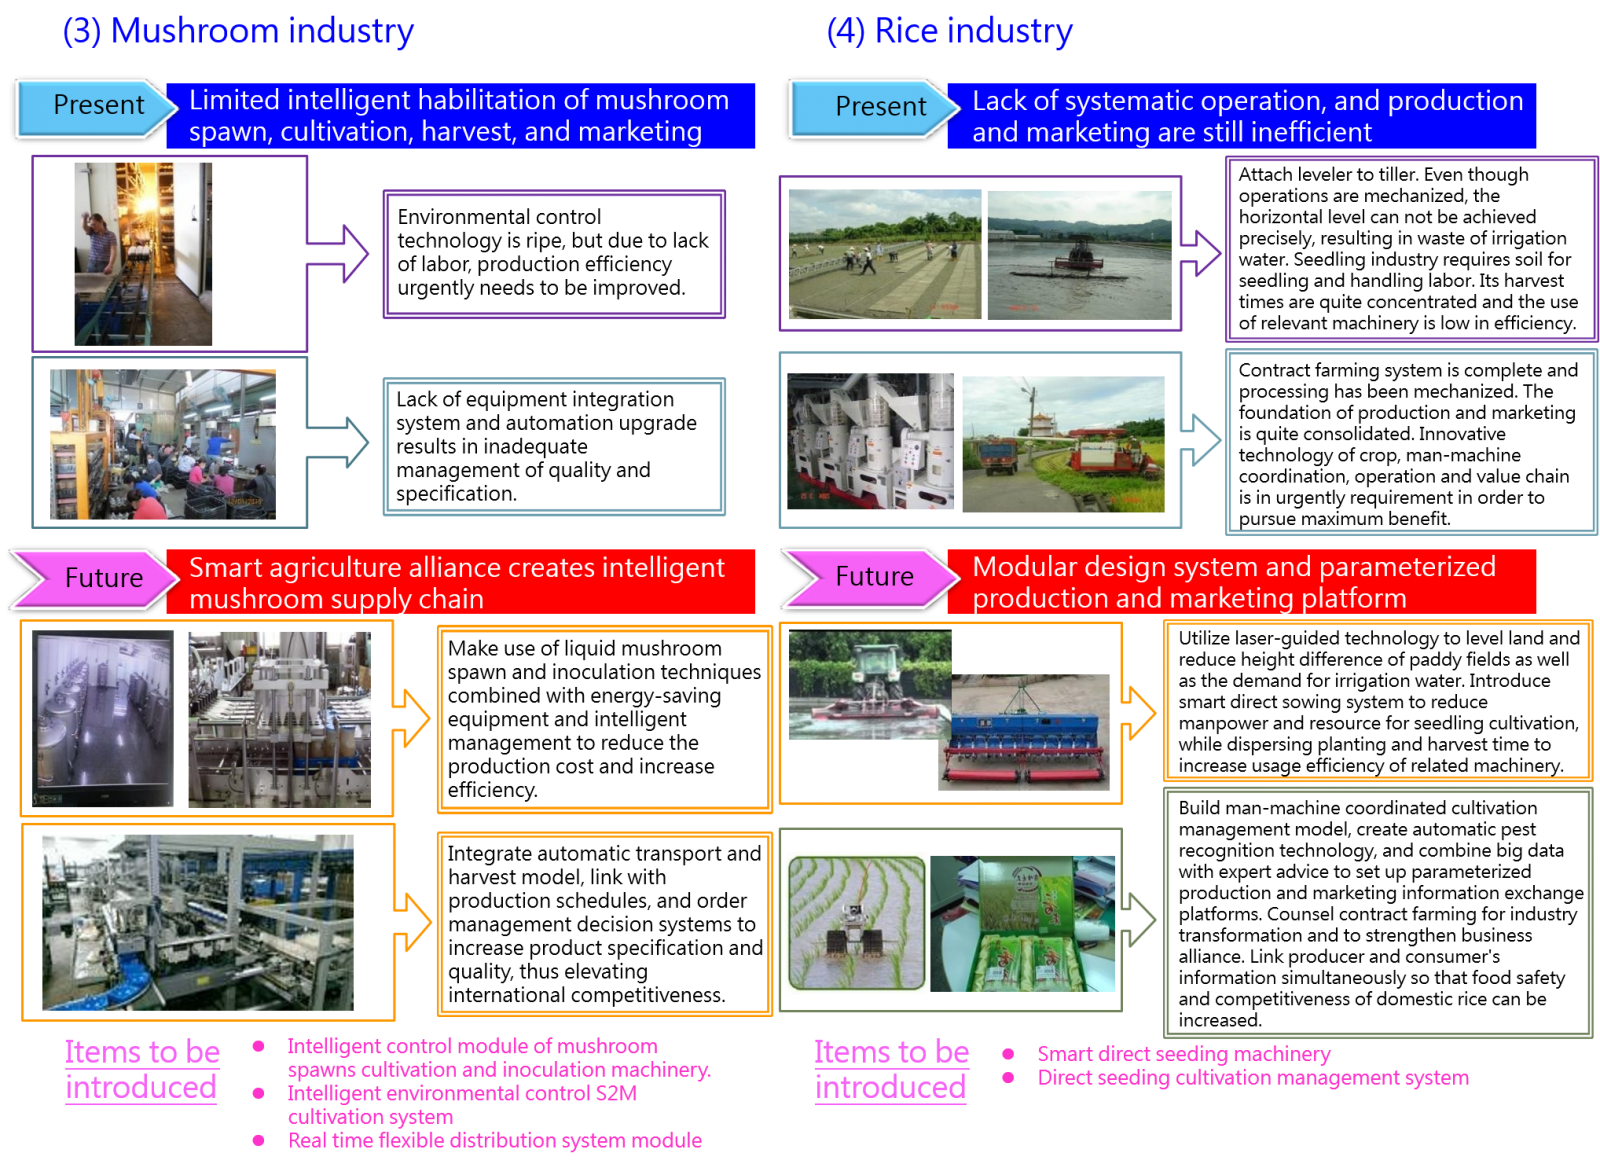 Figure 4: Current technological applications of mushroom and rice industries, and application objectives after implementing Smart Agriculture 4.0.